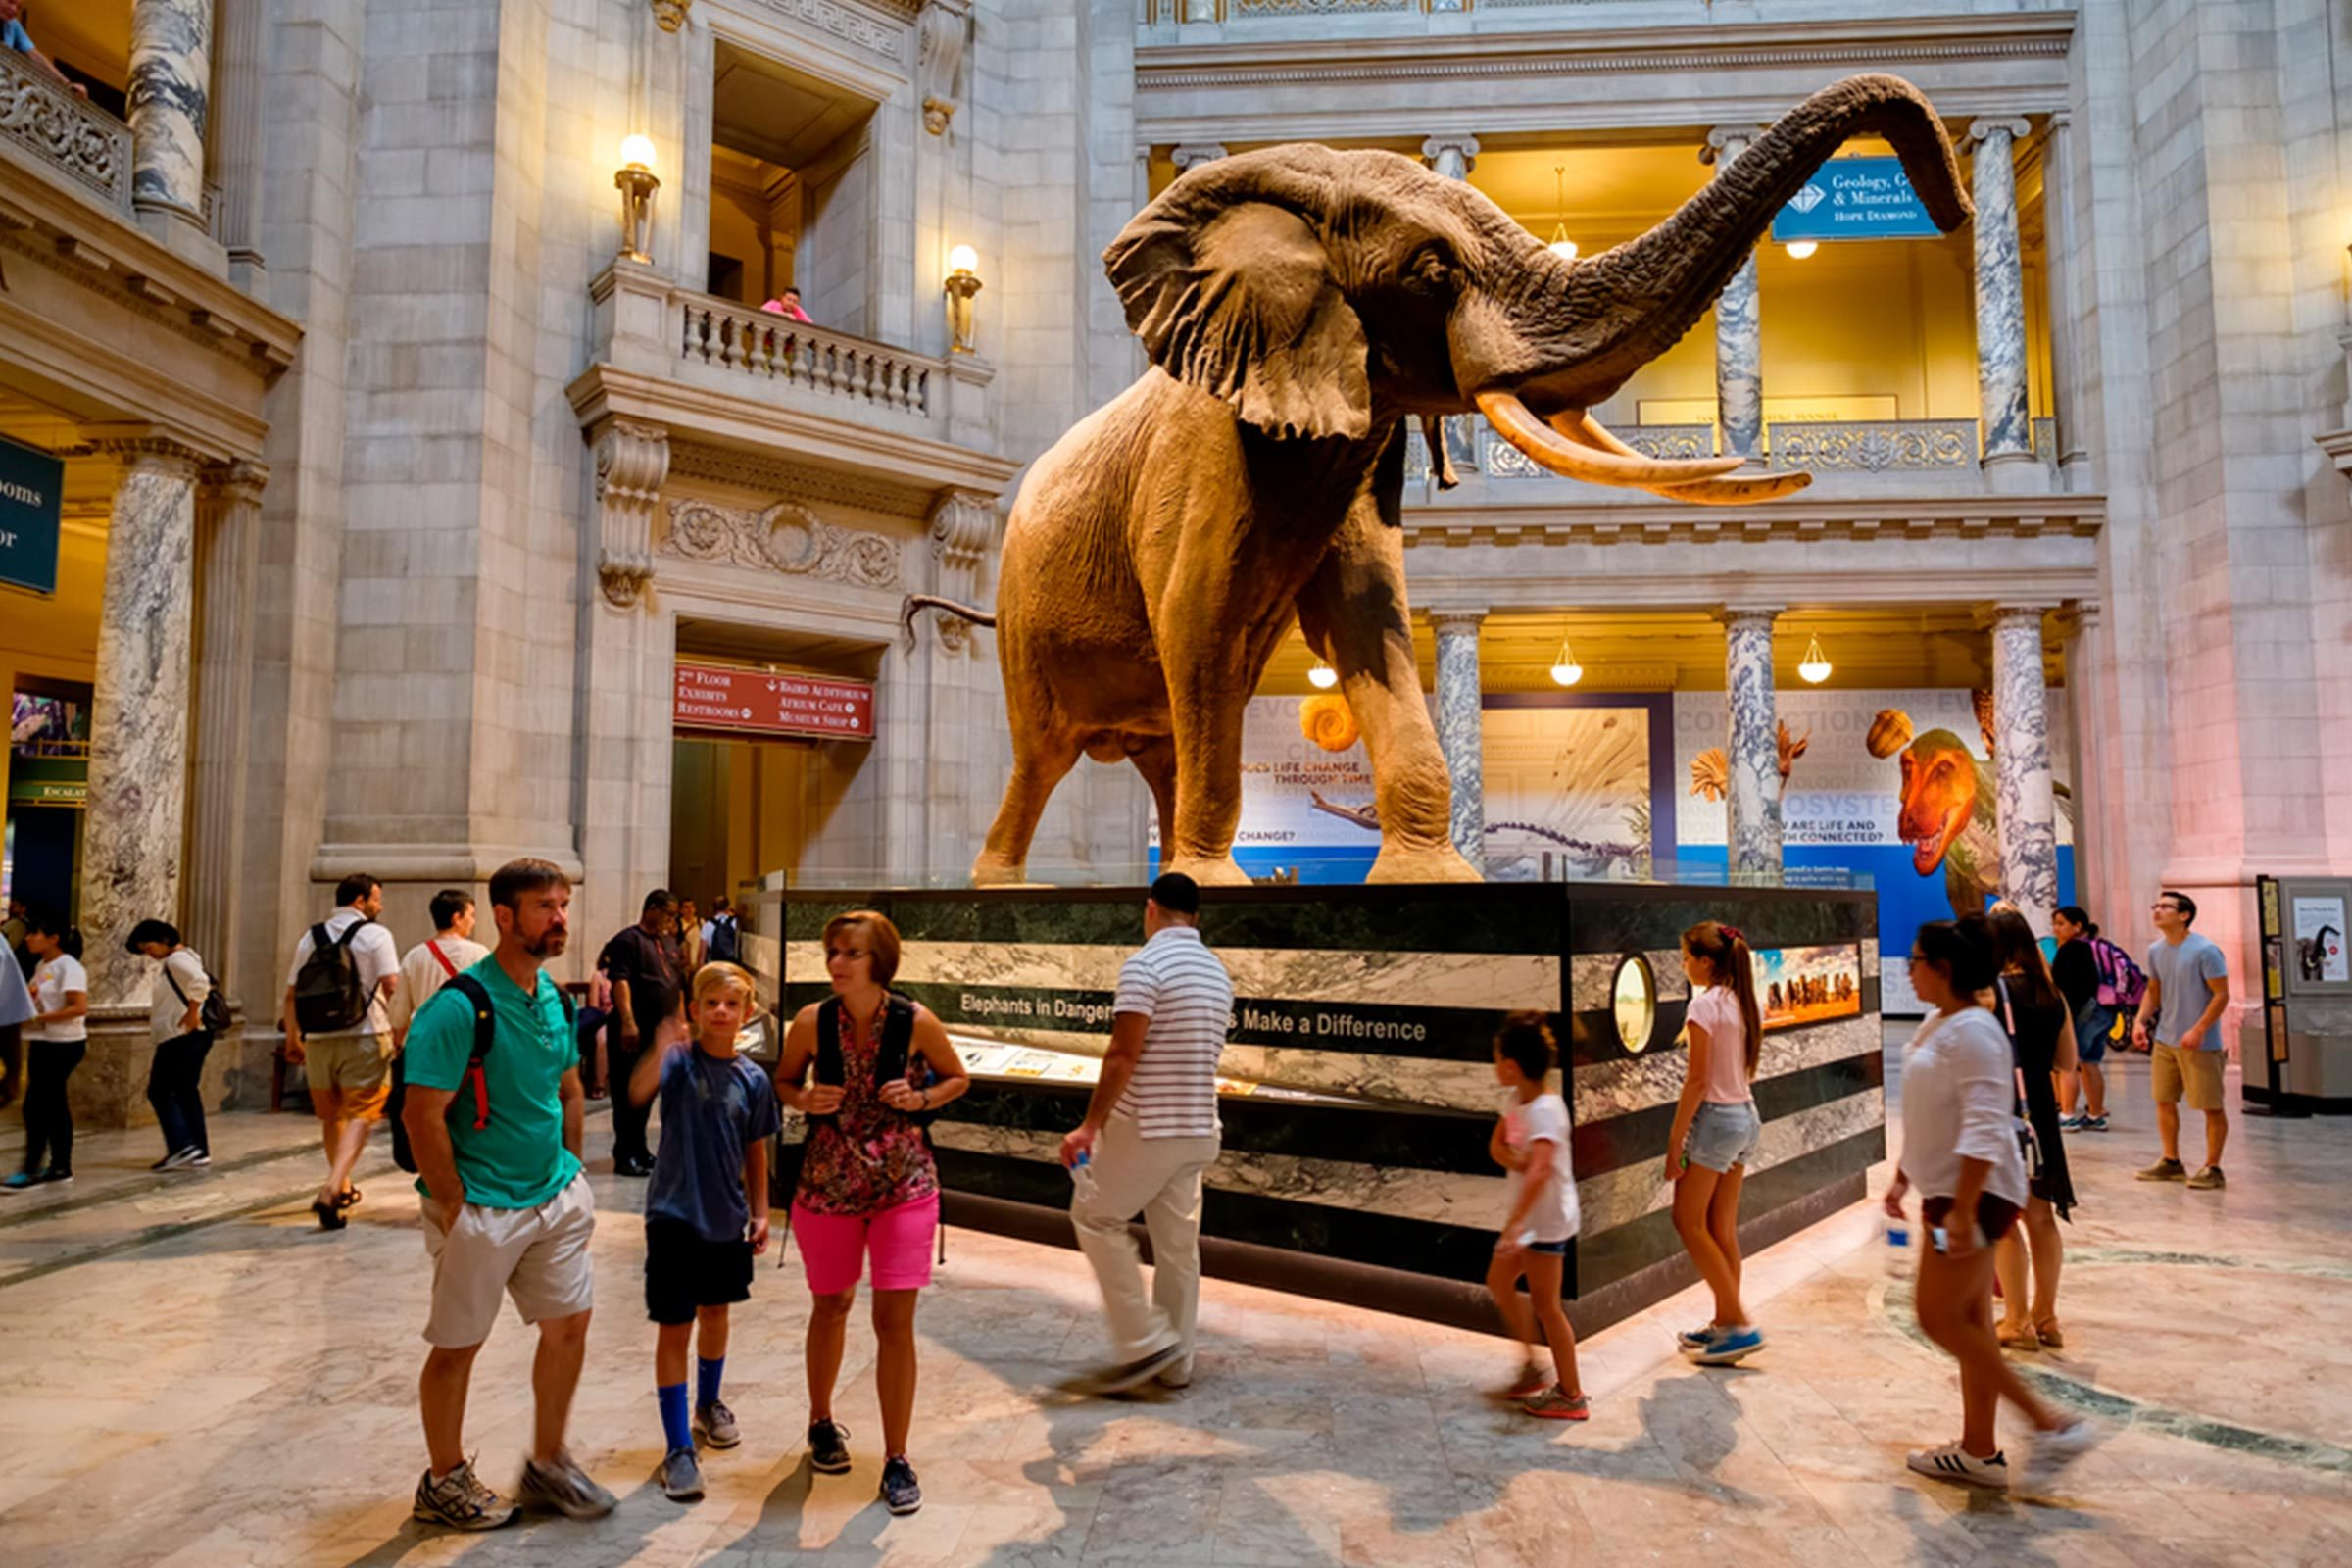 National museum of natural history in DC